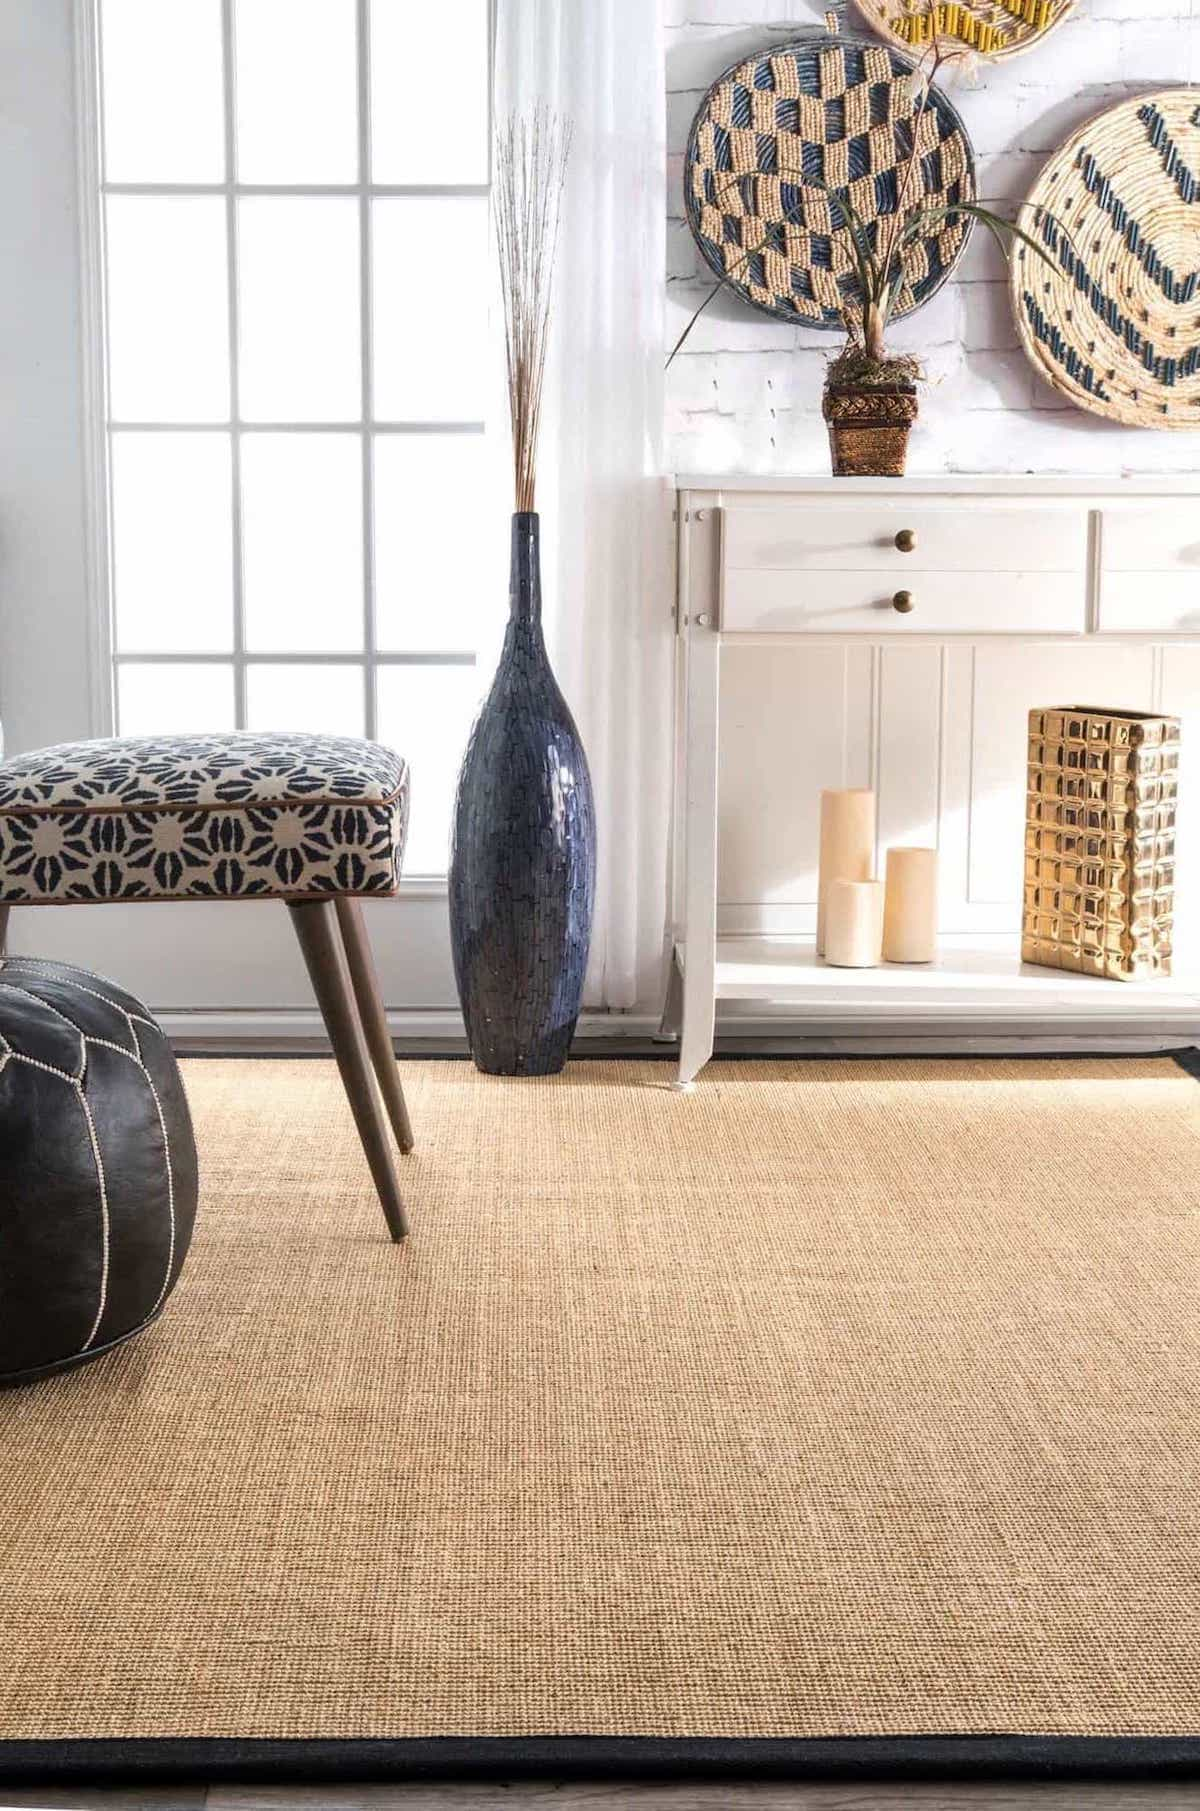 Sisal Rug With Fabric Border For Shabby Chic Living Room Decor With Rug Flooring (View 3 of 15)